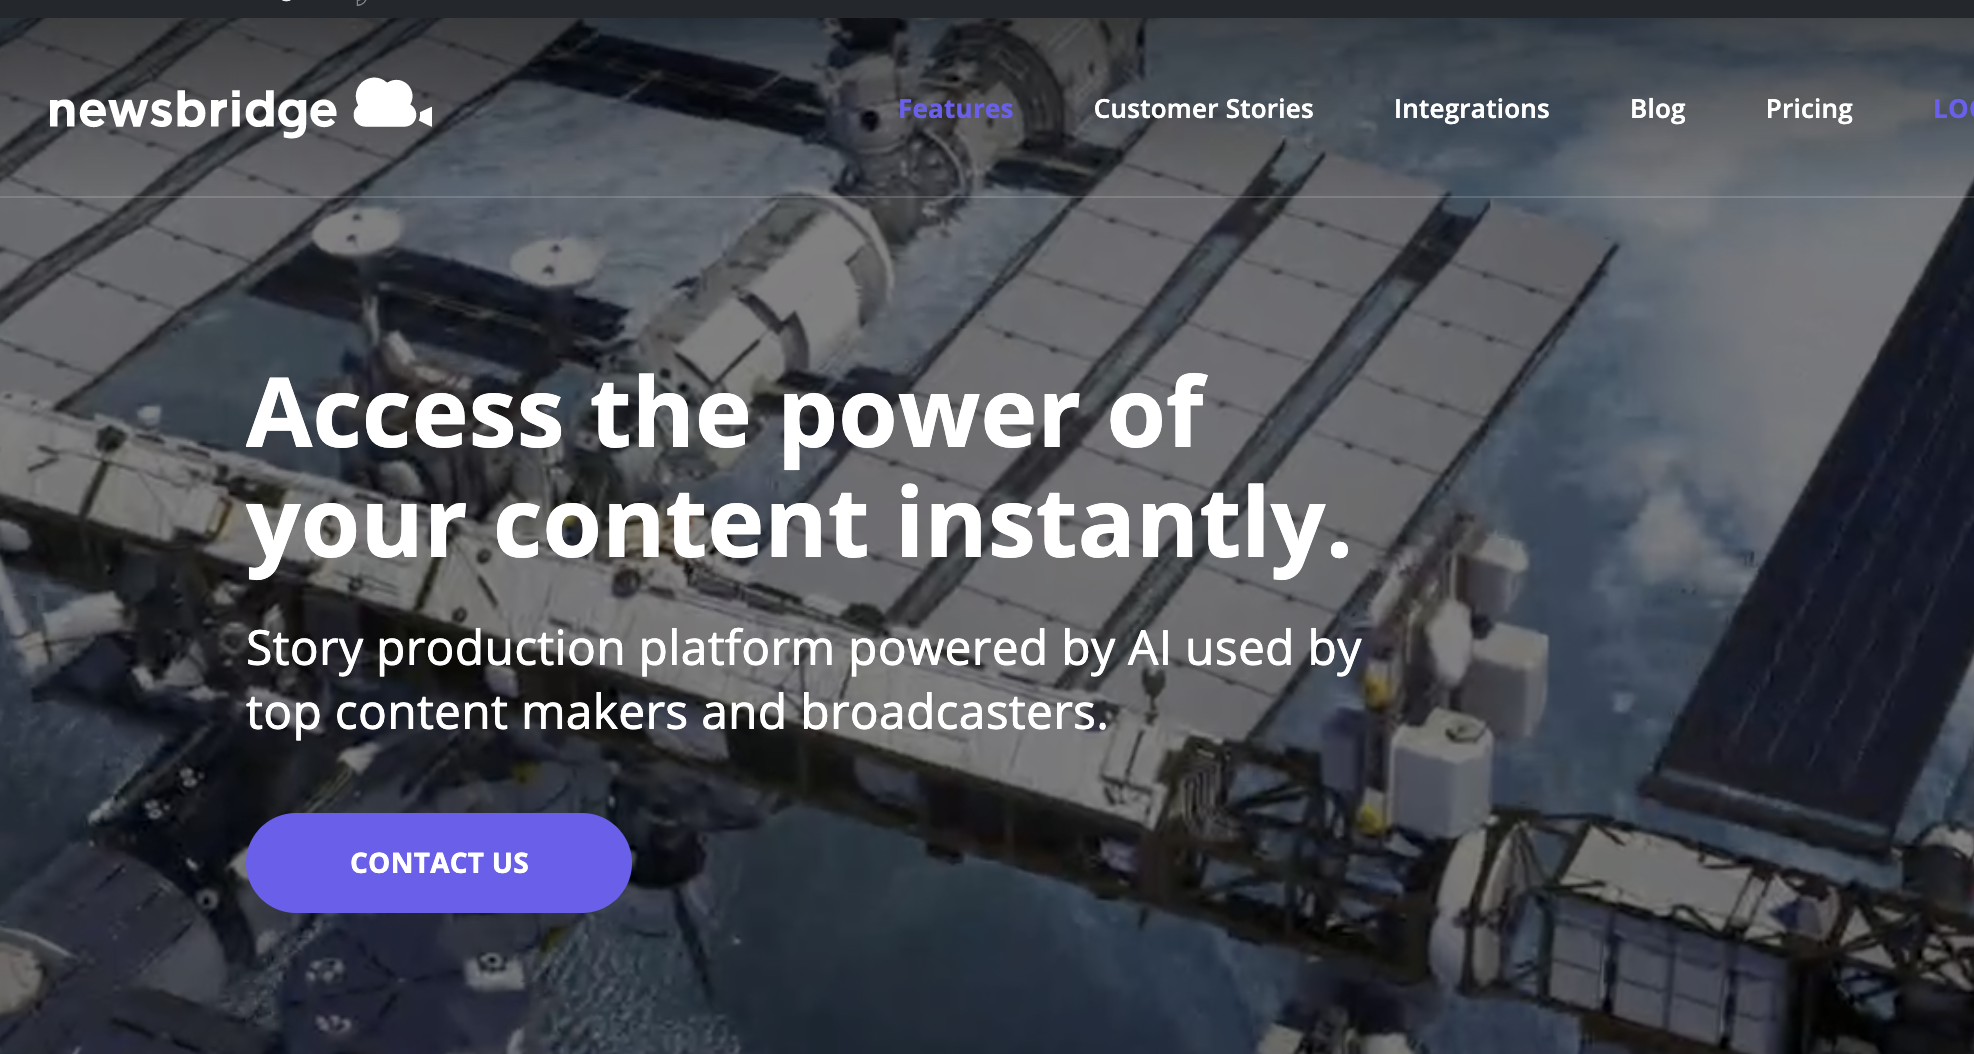 Newsbridge's New Website Launch: Showcasing Multimodal AI